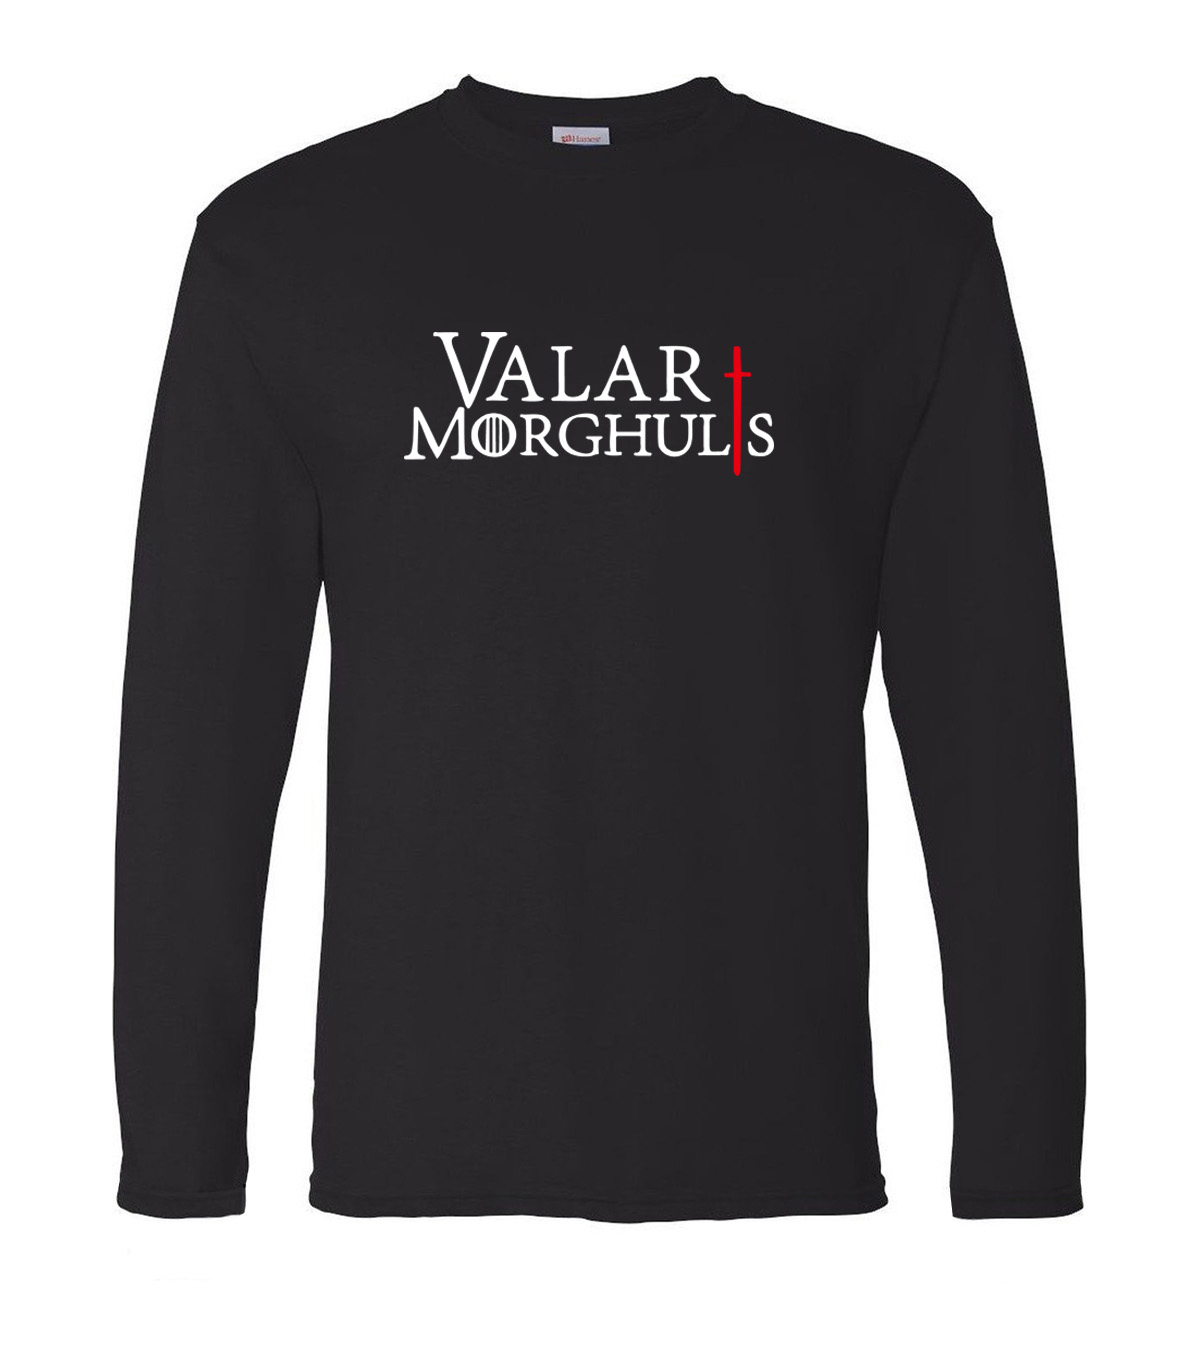 Game Of Thrones Valar Morghulis men's long sleeve T-shirt 2019 spring 100% cotton The Song of Fire and Ice hip hop man t shirt